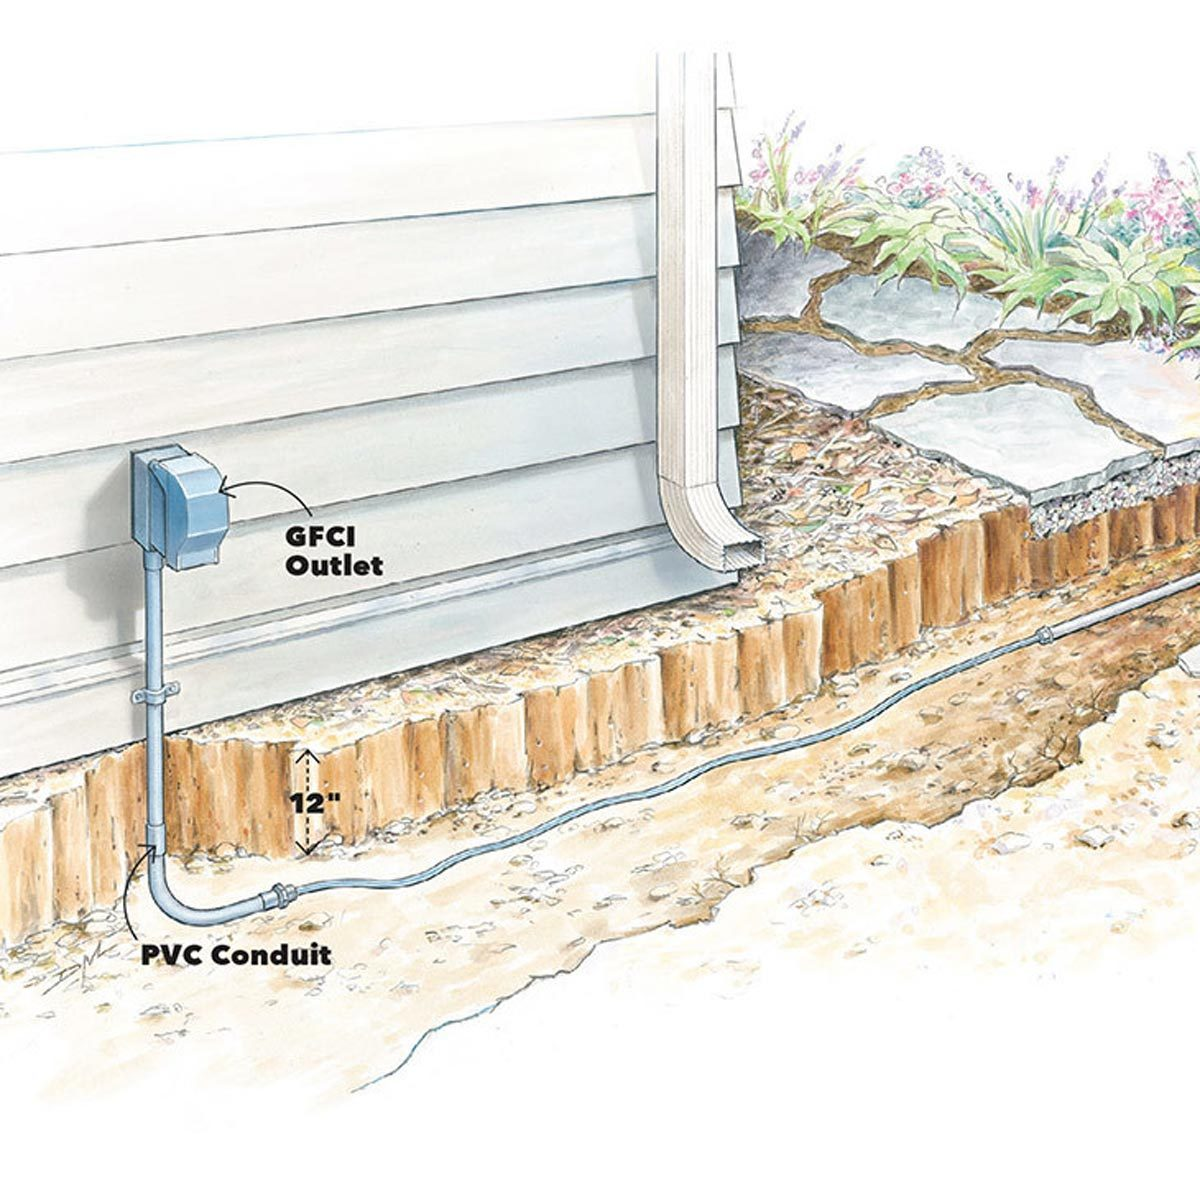 Dryer vent as conduit—brilliant! - The right way: